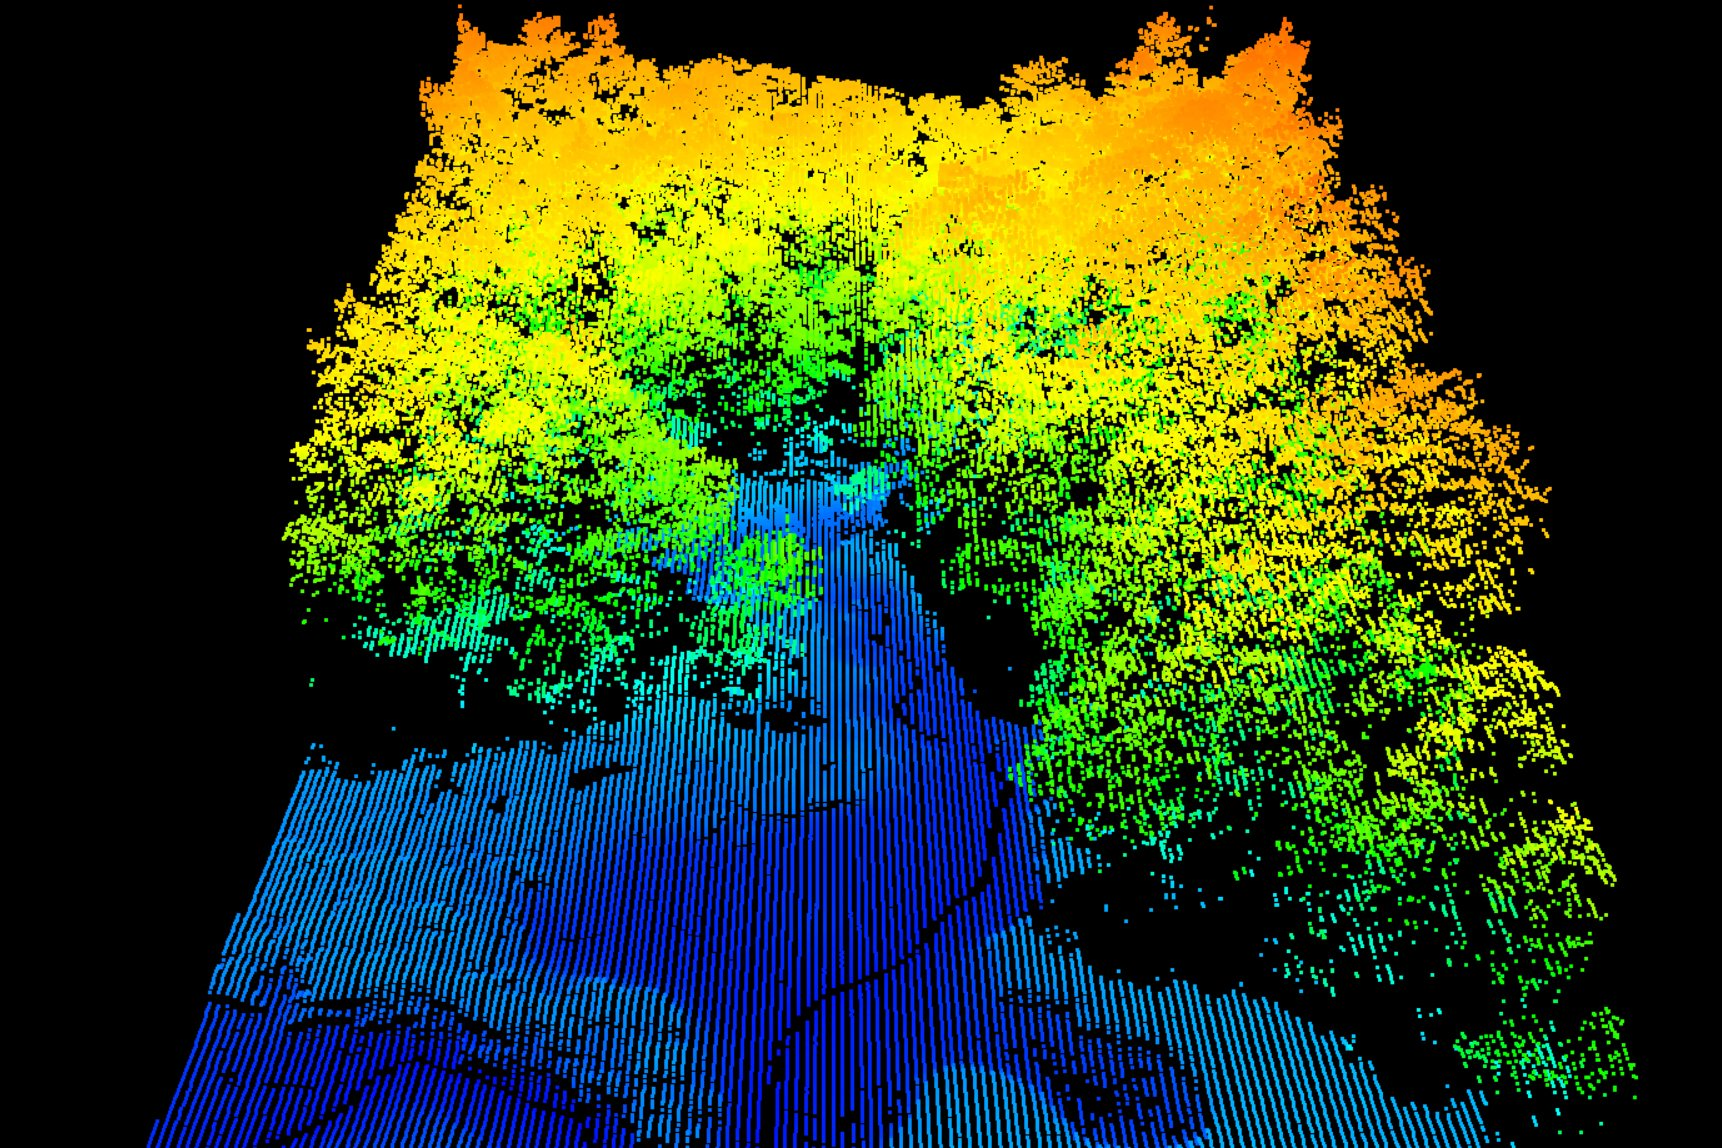 Pachama uses tech like LIDAR to calculate biomass density in the forests their projects protect. Pachama